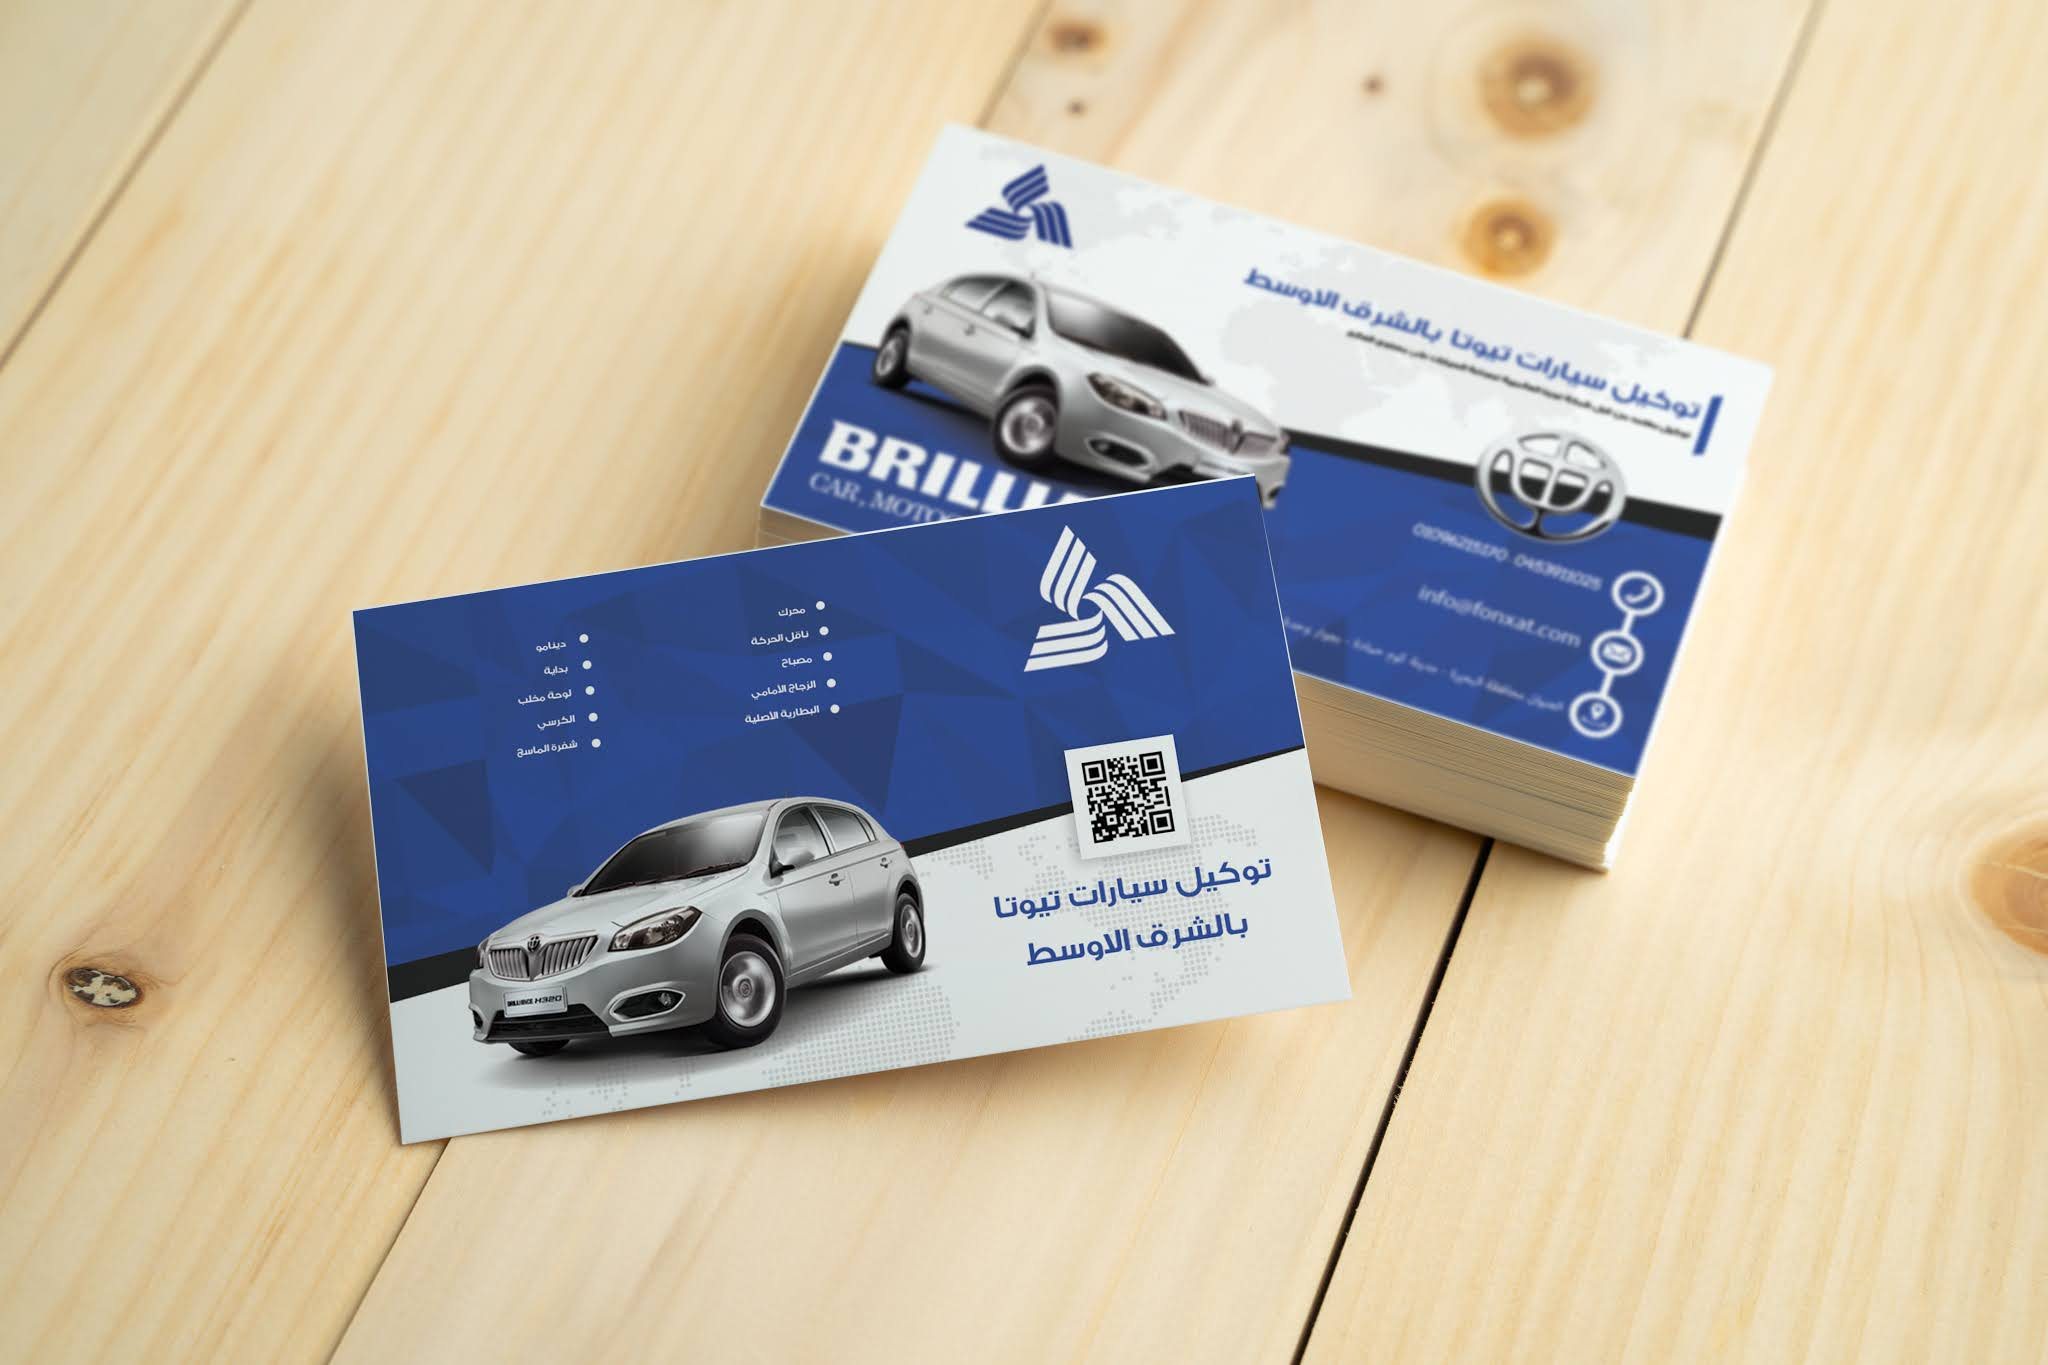 Free download, open source personal card, blue, for cars and vehicles